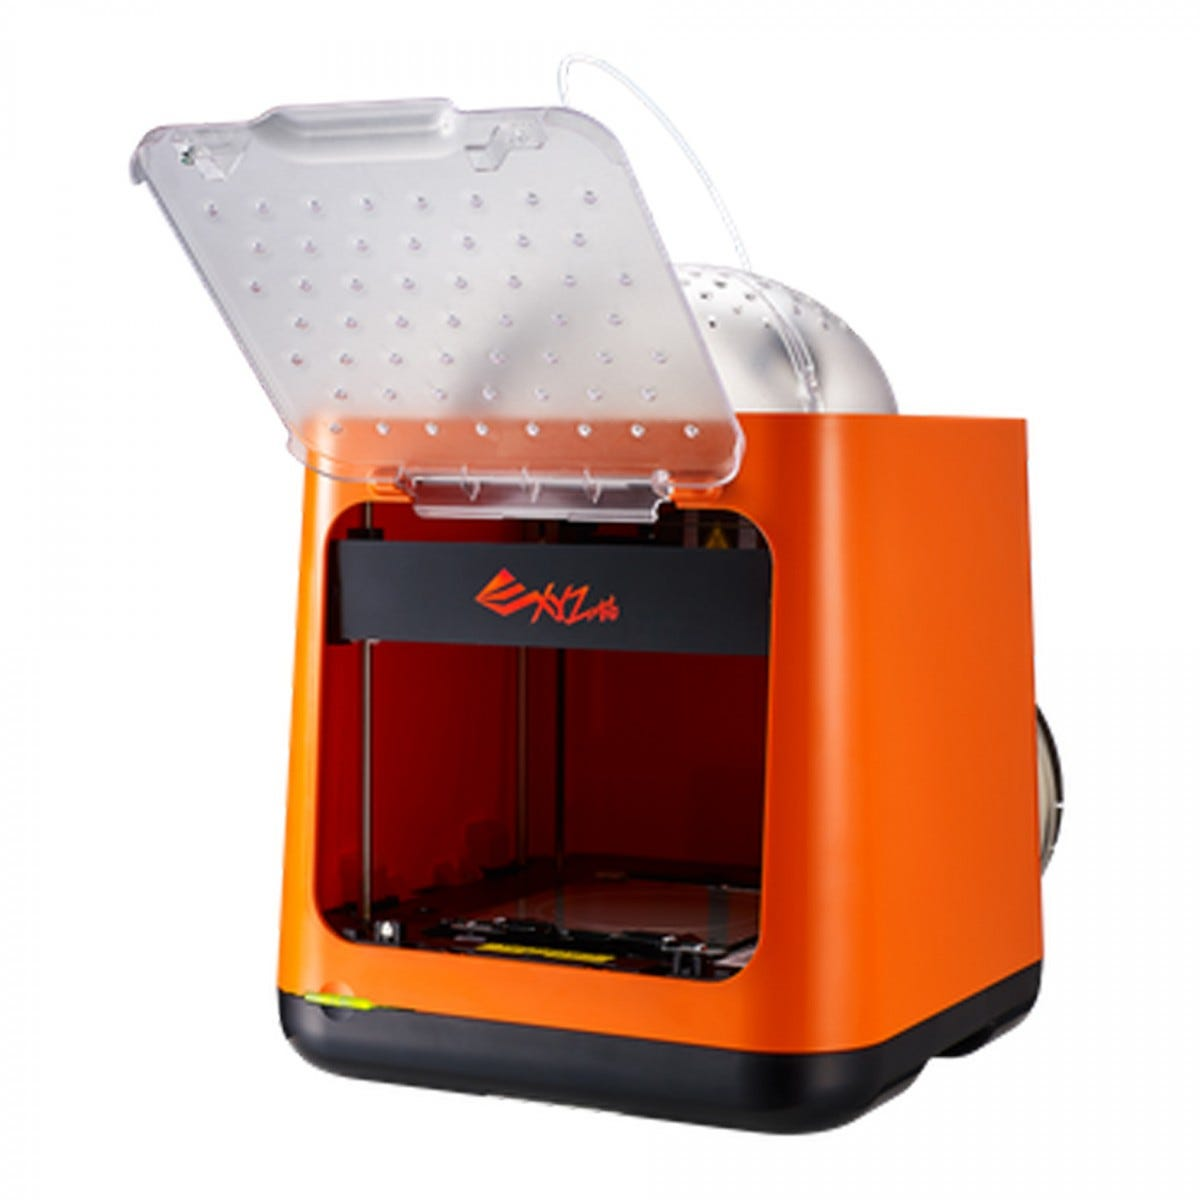 Nano 3D printer with the front cover open.